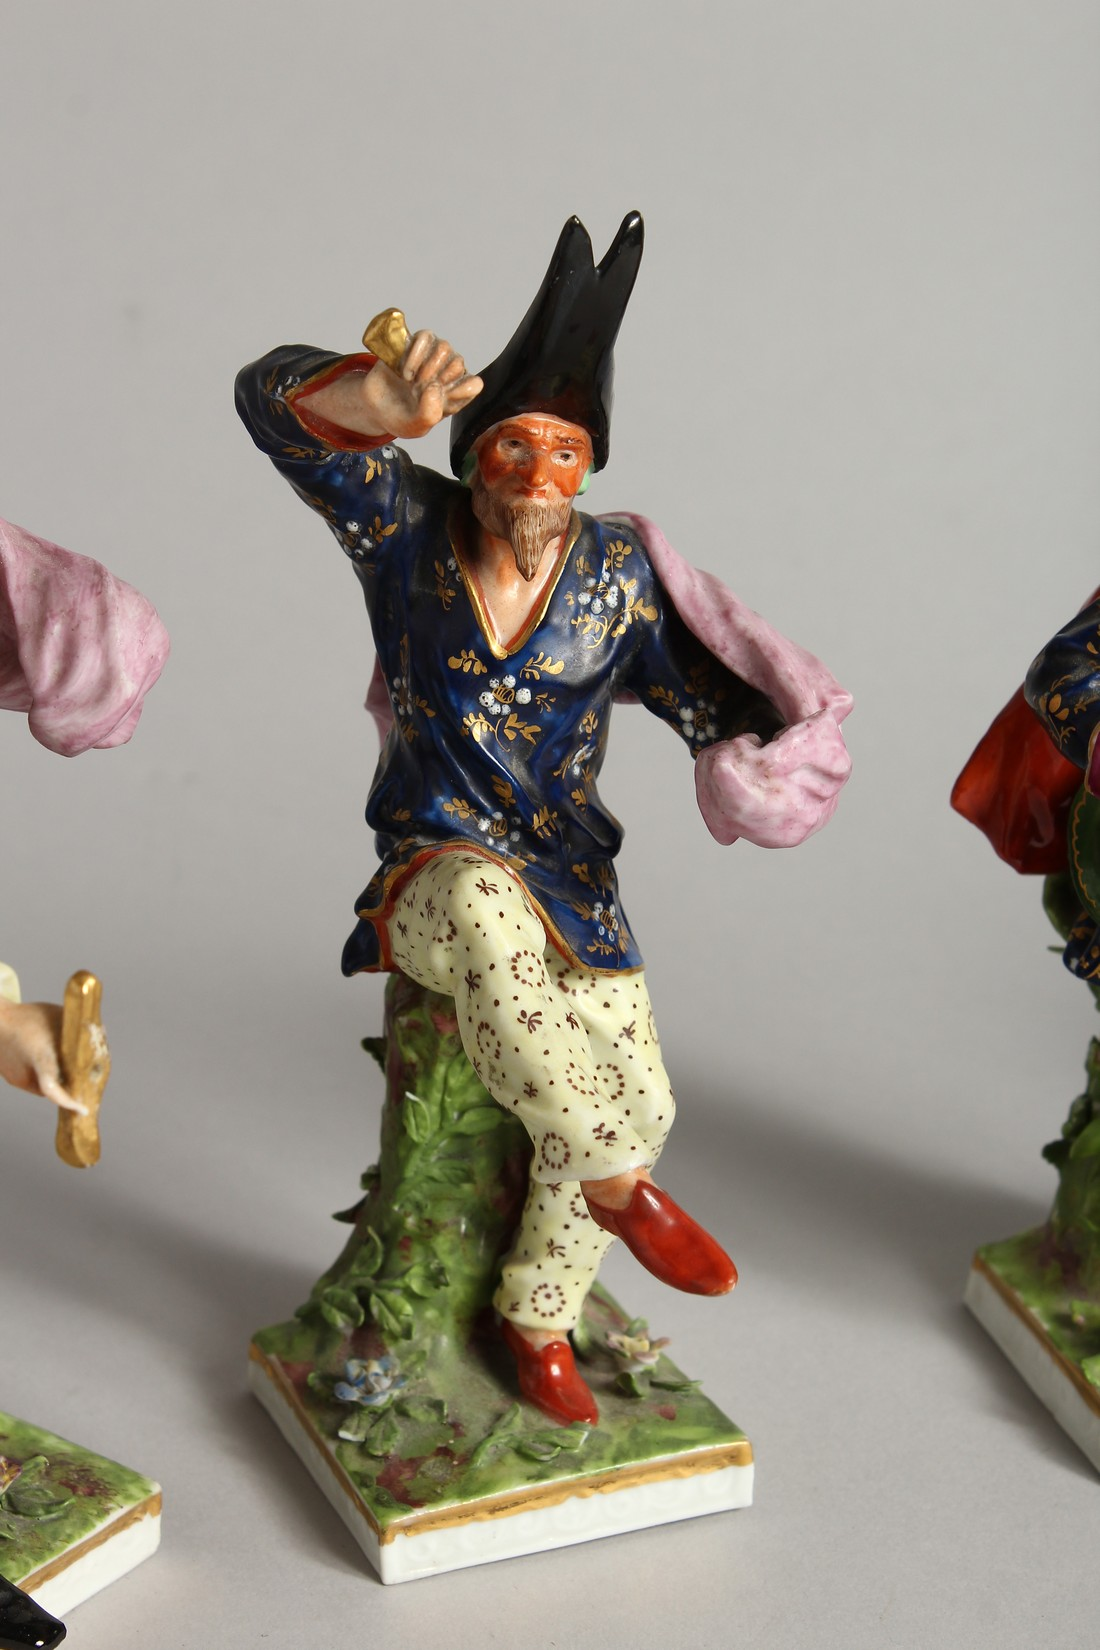 """A SET OF FOUR """"COMMEDIA DELL ARTE """" STYLE FIGURES, LATE 19TH CENTURY/EARLY 20TH CENTURY, possibly by - Image 3 of 9"""